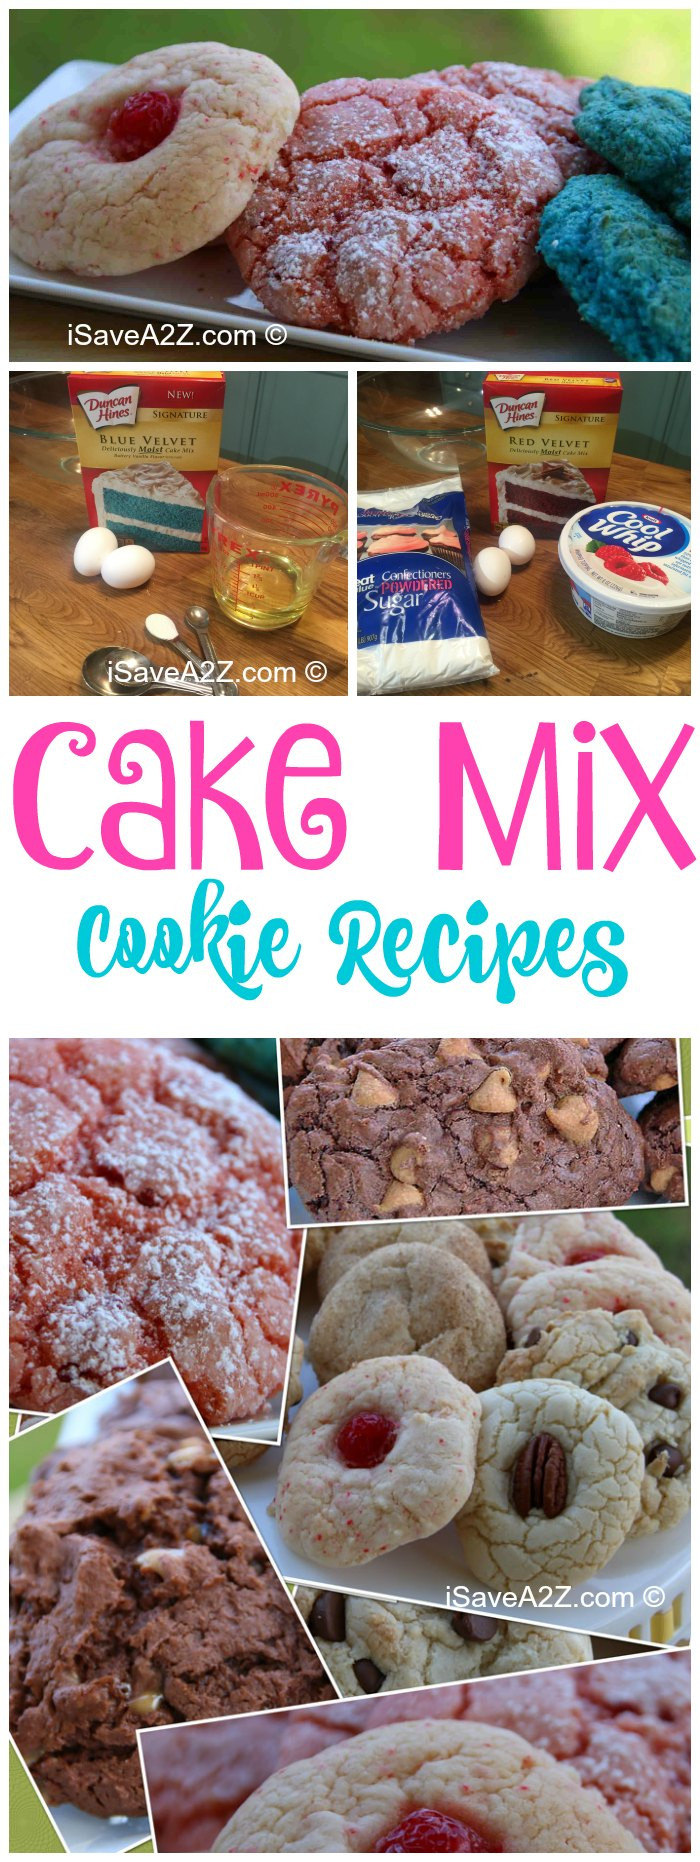 Recipes Using Cake Mix  Top 45 Recipe Variations for Cake Mix Cookies iSaveA2Z